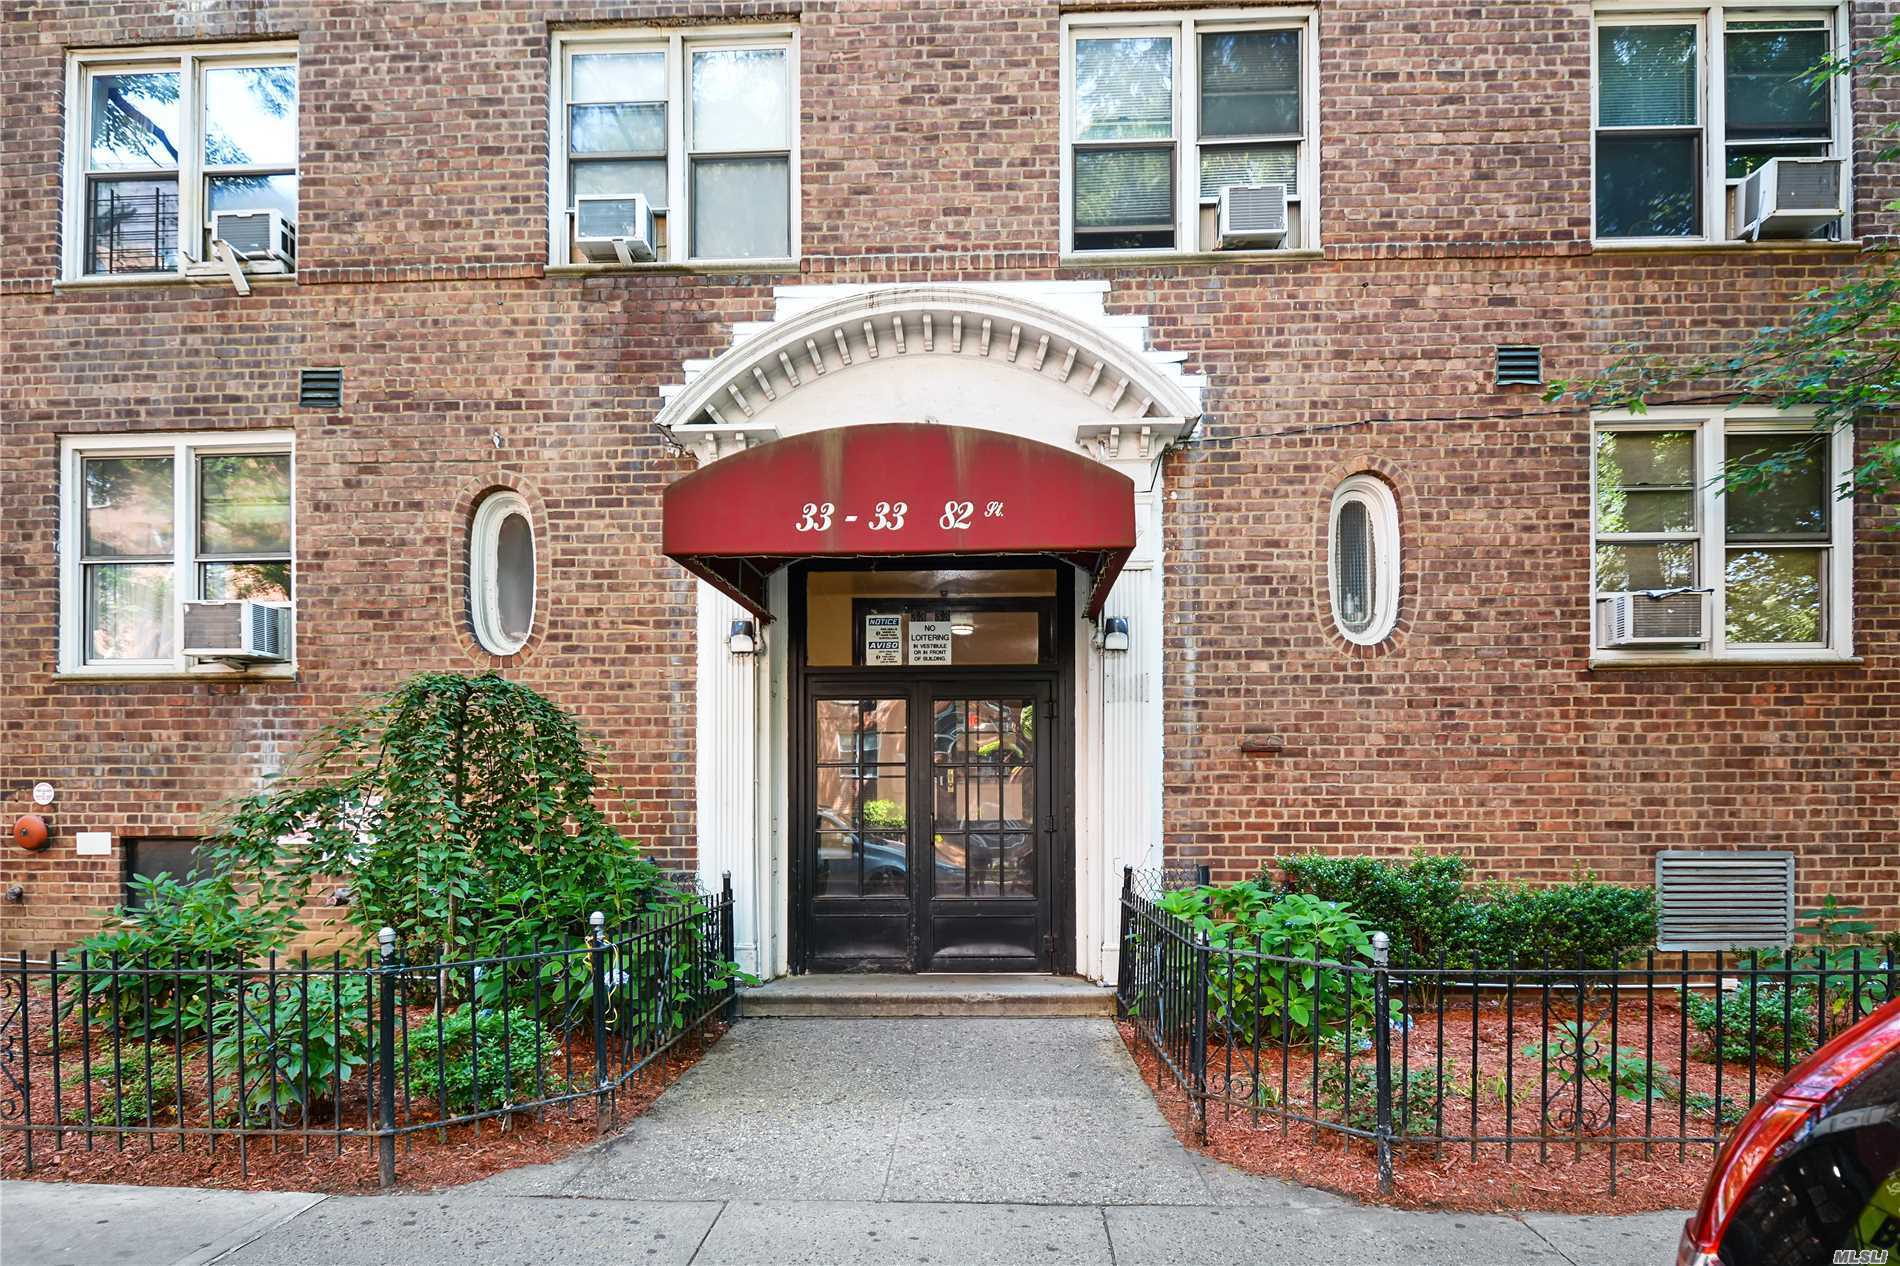 Sun-Drenched 1 Br Coop In The Heart Of Jackson Heights Historic District. This Charming 5th-Floor Apt Features A Large Entry Foyer, Updated Kitchen, Updated Bathroom, & Windows In Every Room. Building Amenities Include Laundry, And Secured Entry. Complex Offers A Live-In Super. Sub-Lease Is Welcomed After 2 Yrs. W/Board Approval. Just Minutes Away From The Q32, Q33, And The Q66 Bus, The E, M, And The 7 Train Lines. Enjoy Entertainment Along Northern Blvd.